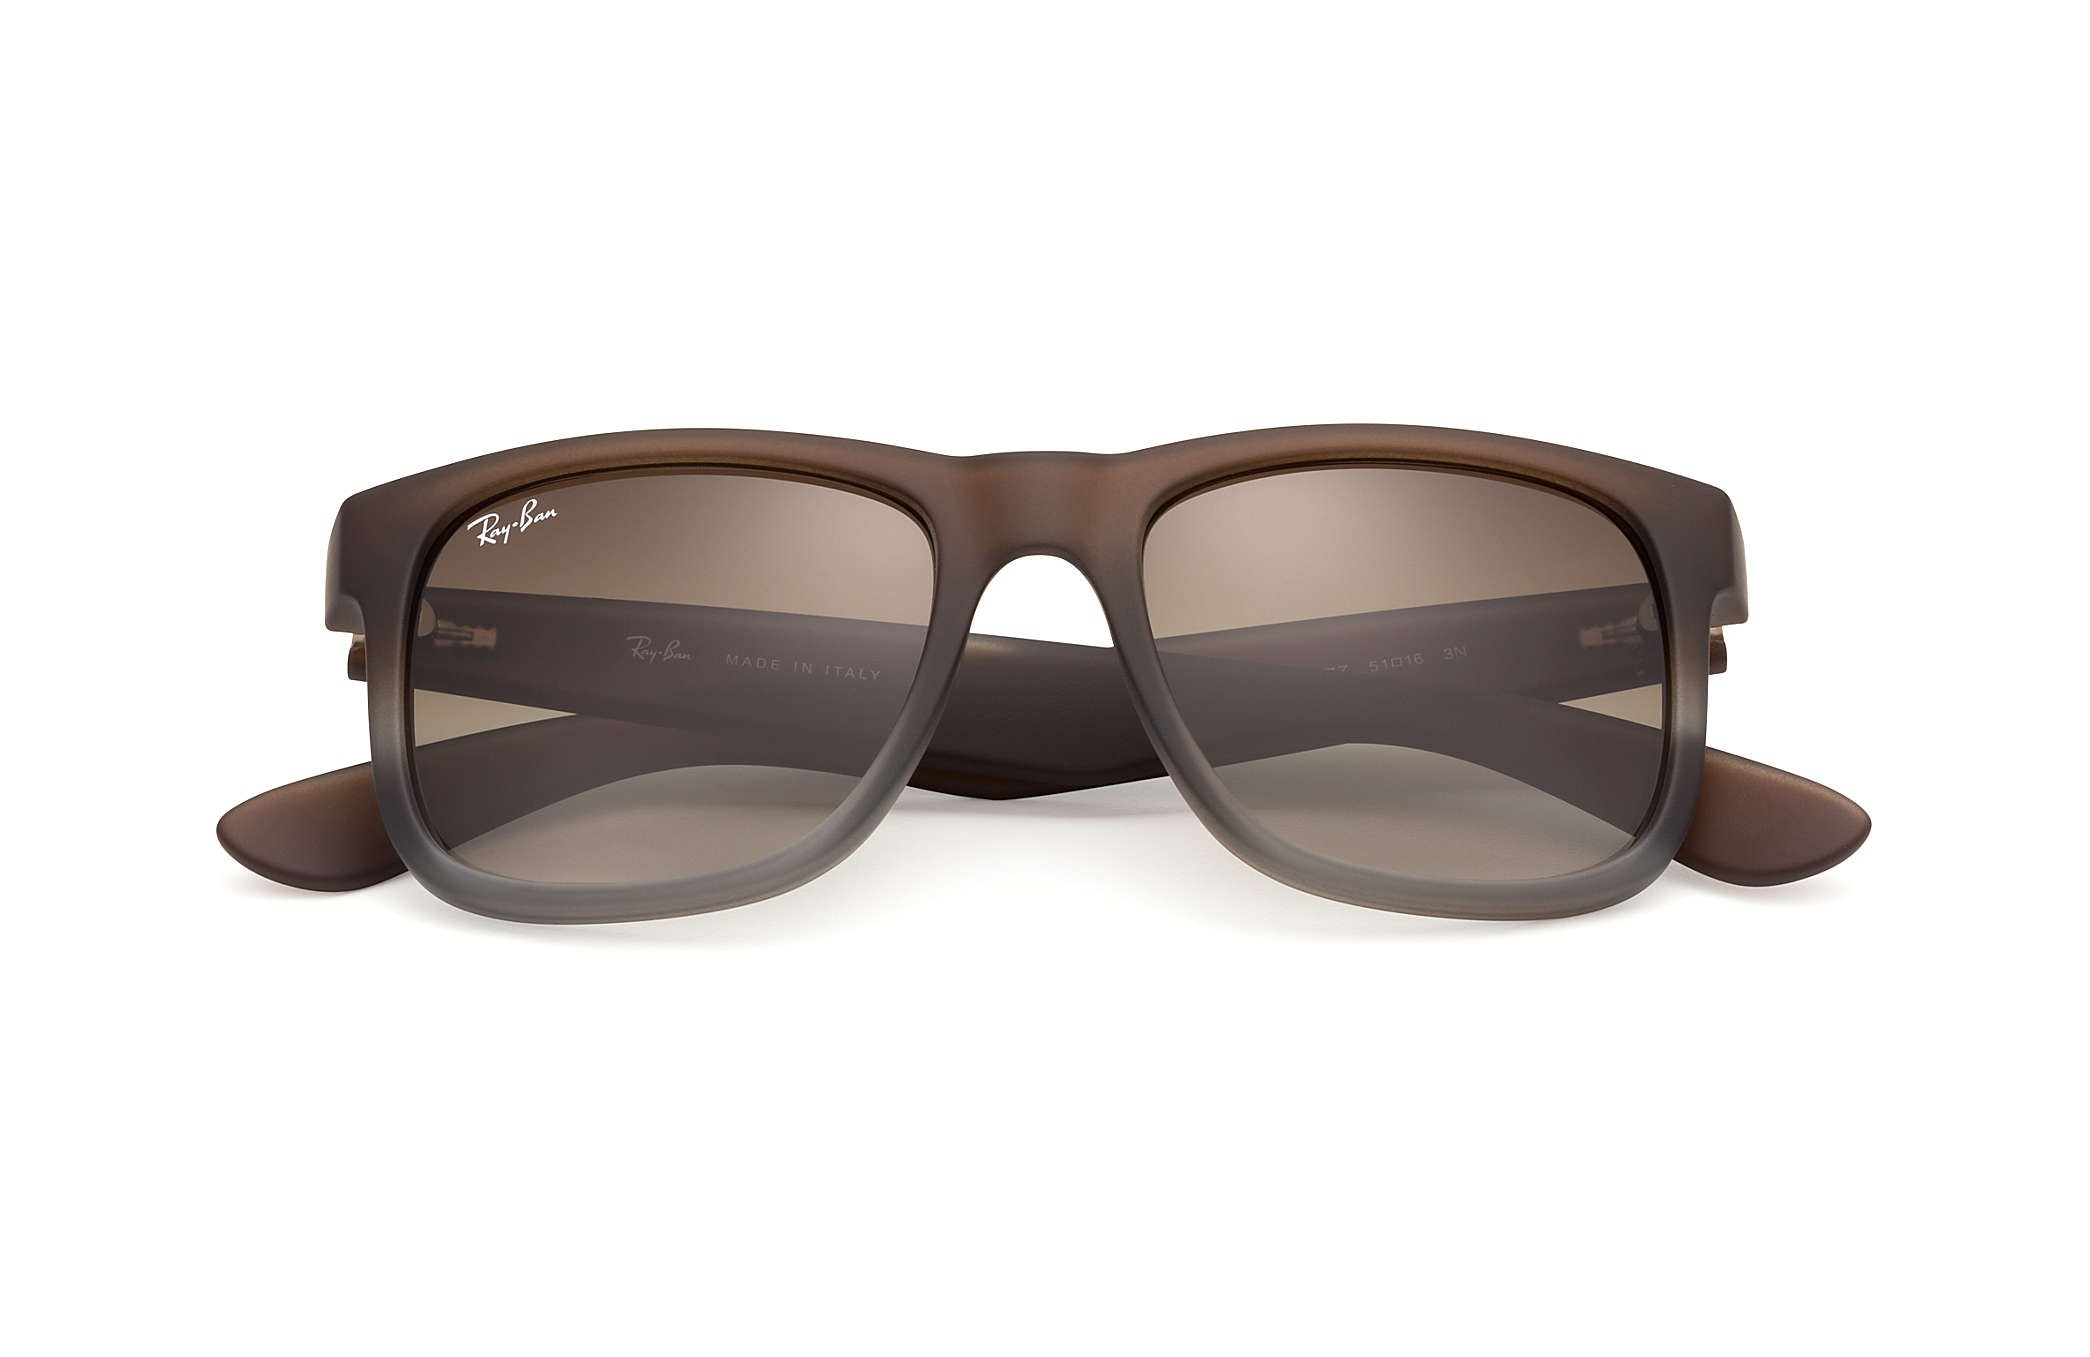 RAY-BAN 0RB4165 - JUSTIN SUNGLASSES - OPTICIWEAR.COM